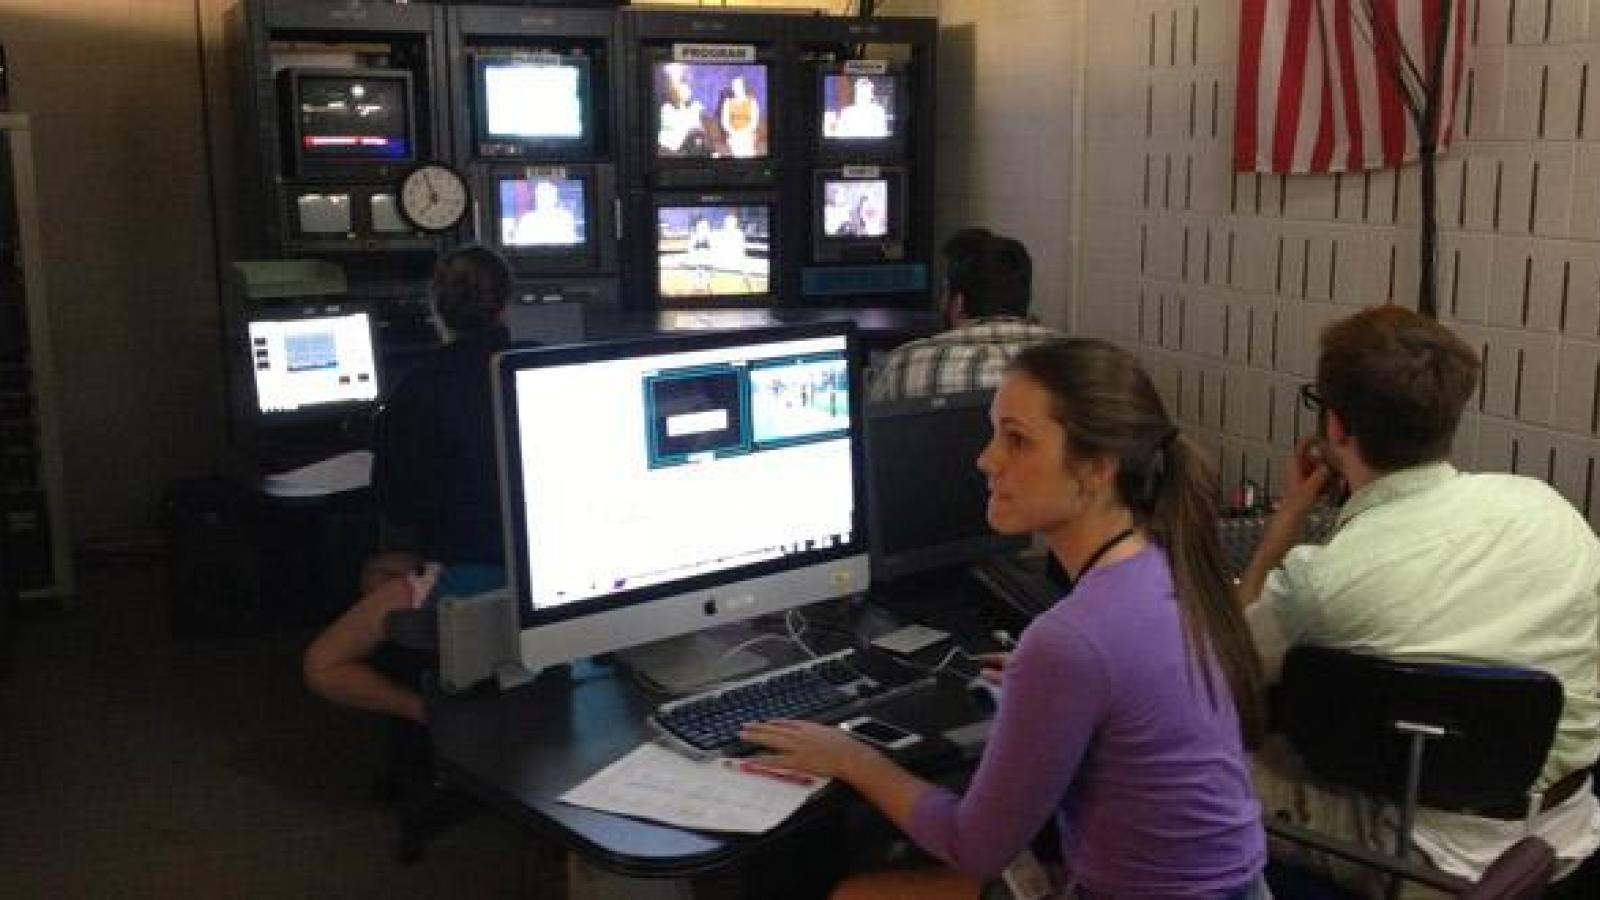 Undergraduates work together for hands-on experience in film production.